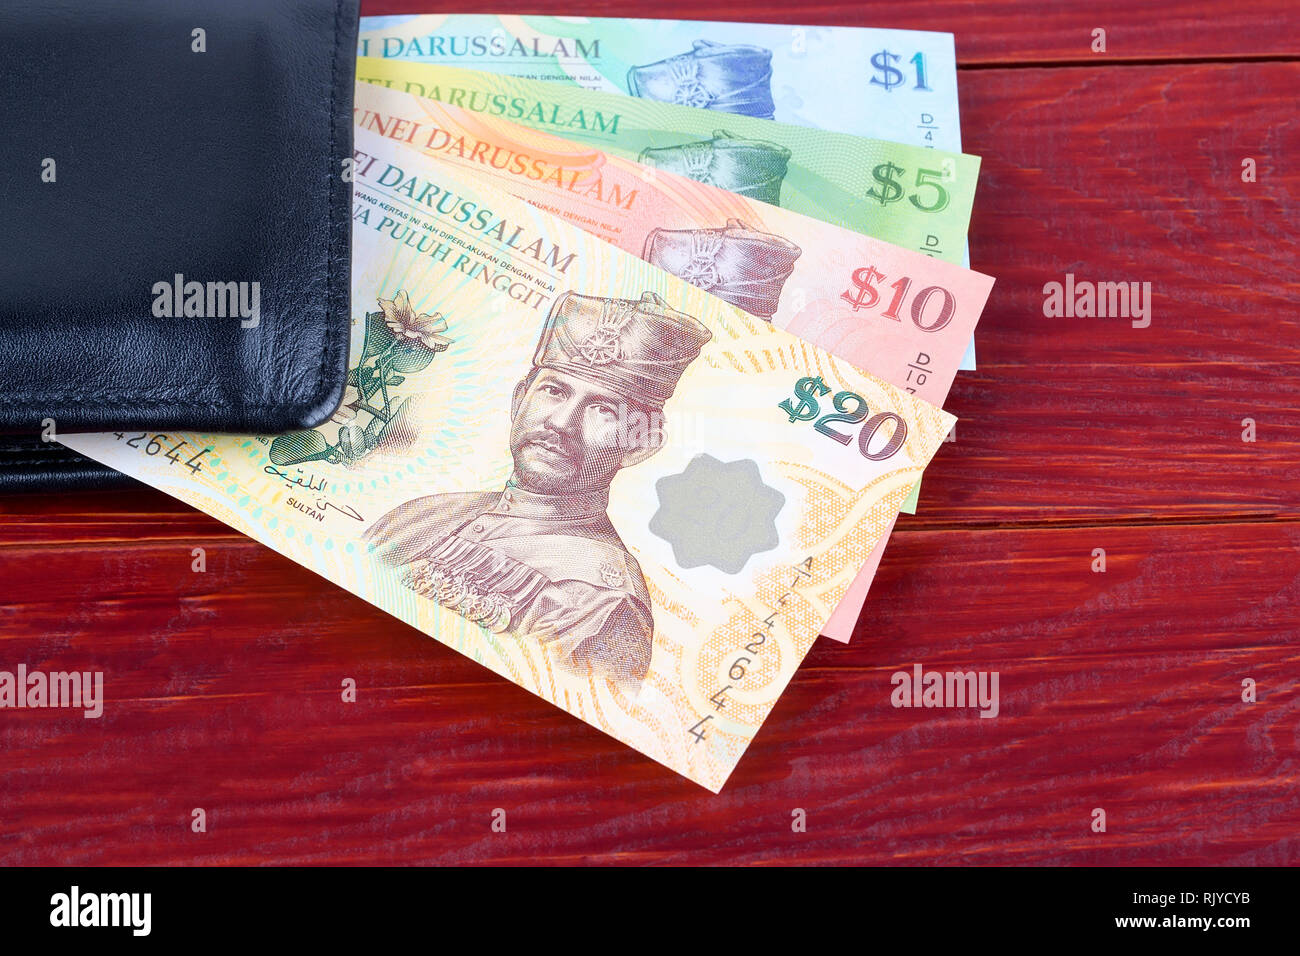 Money from Brunei in the black wallet - Stock Image